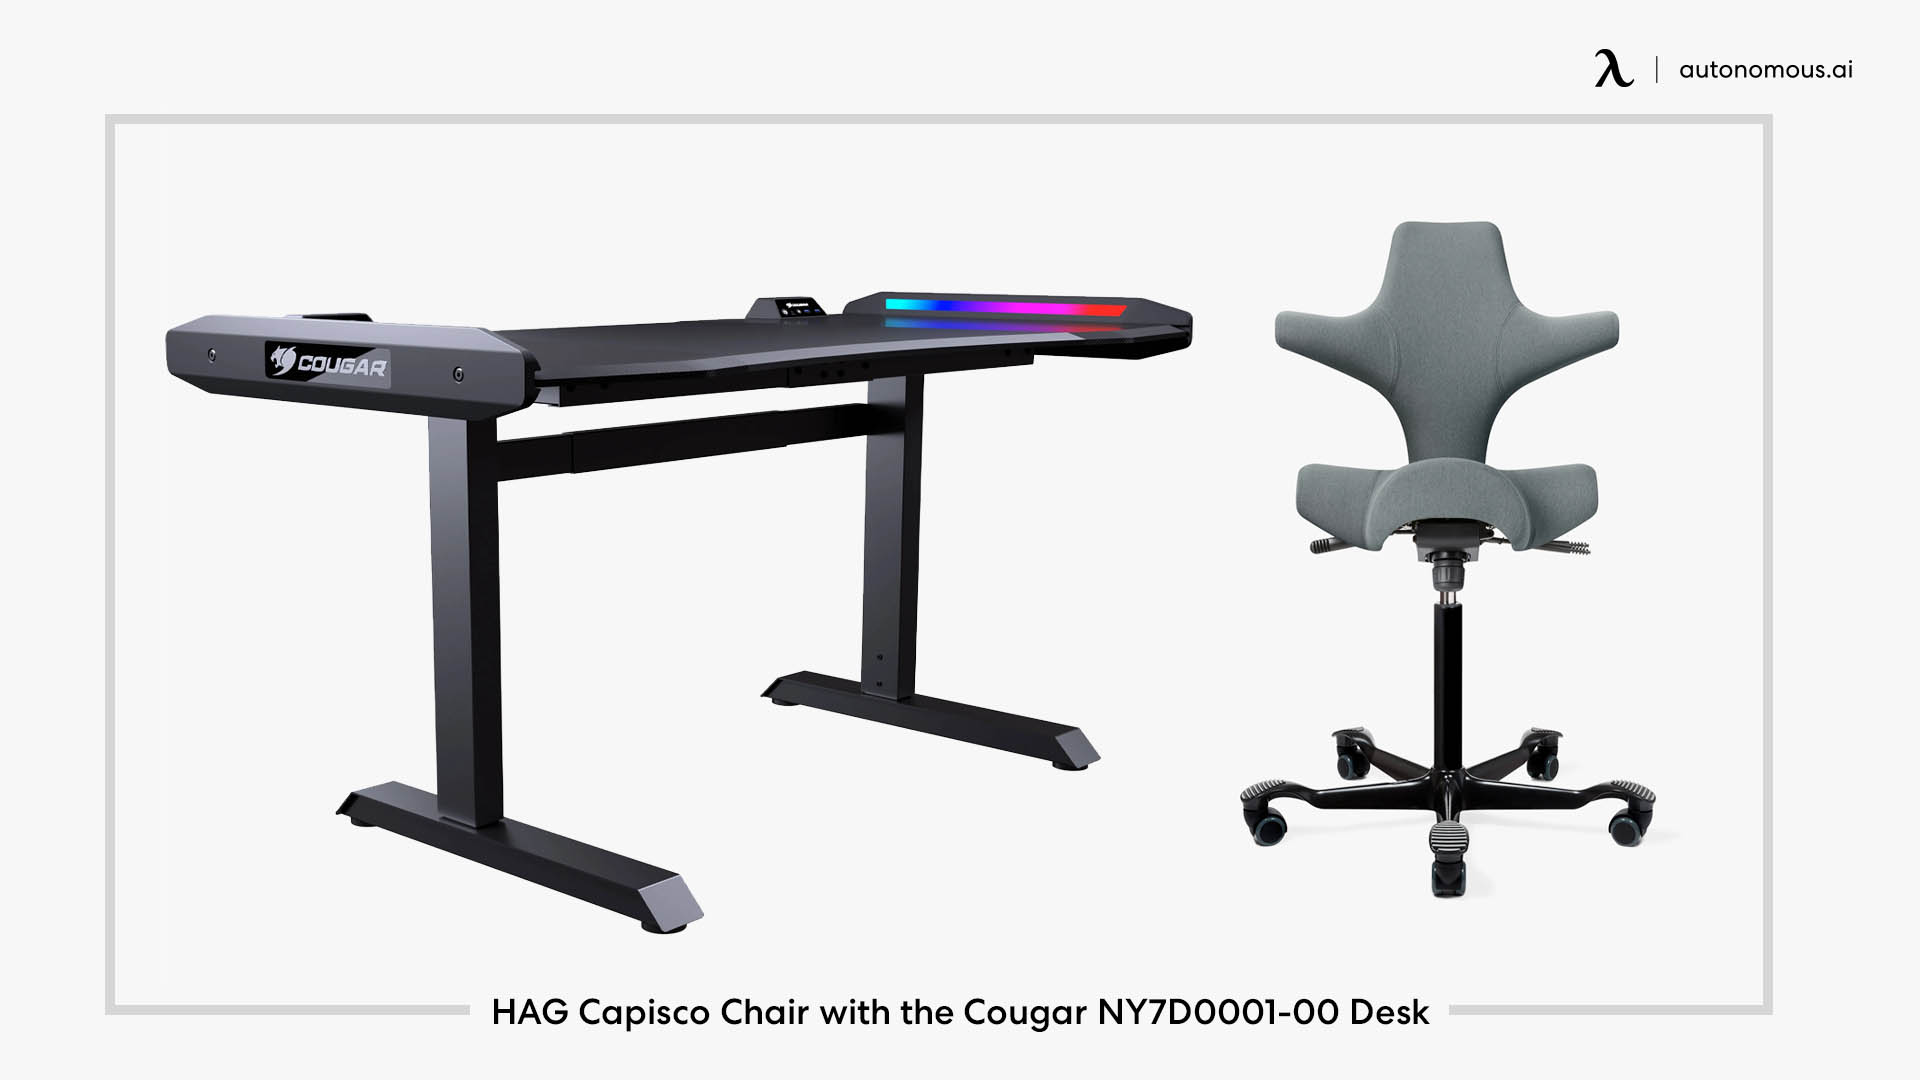 HAG Capisco Chair with the Cougar NY7D0001-00 Desk